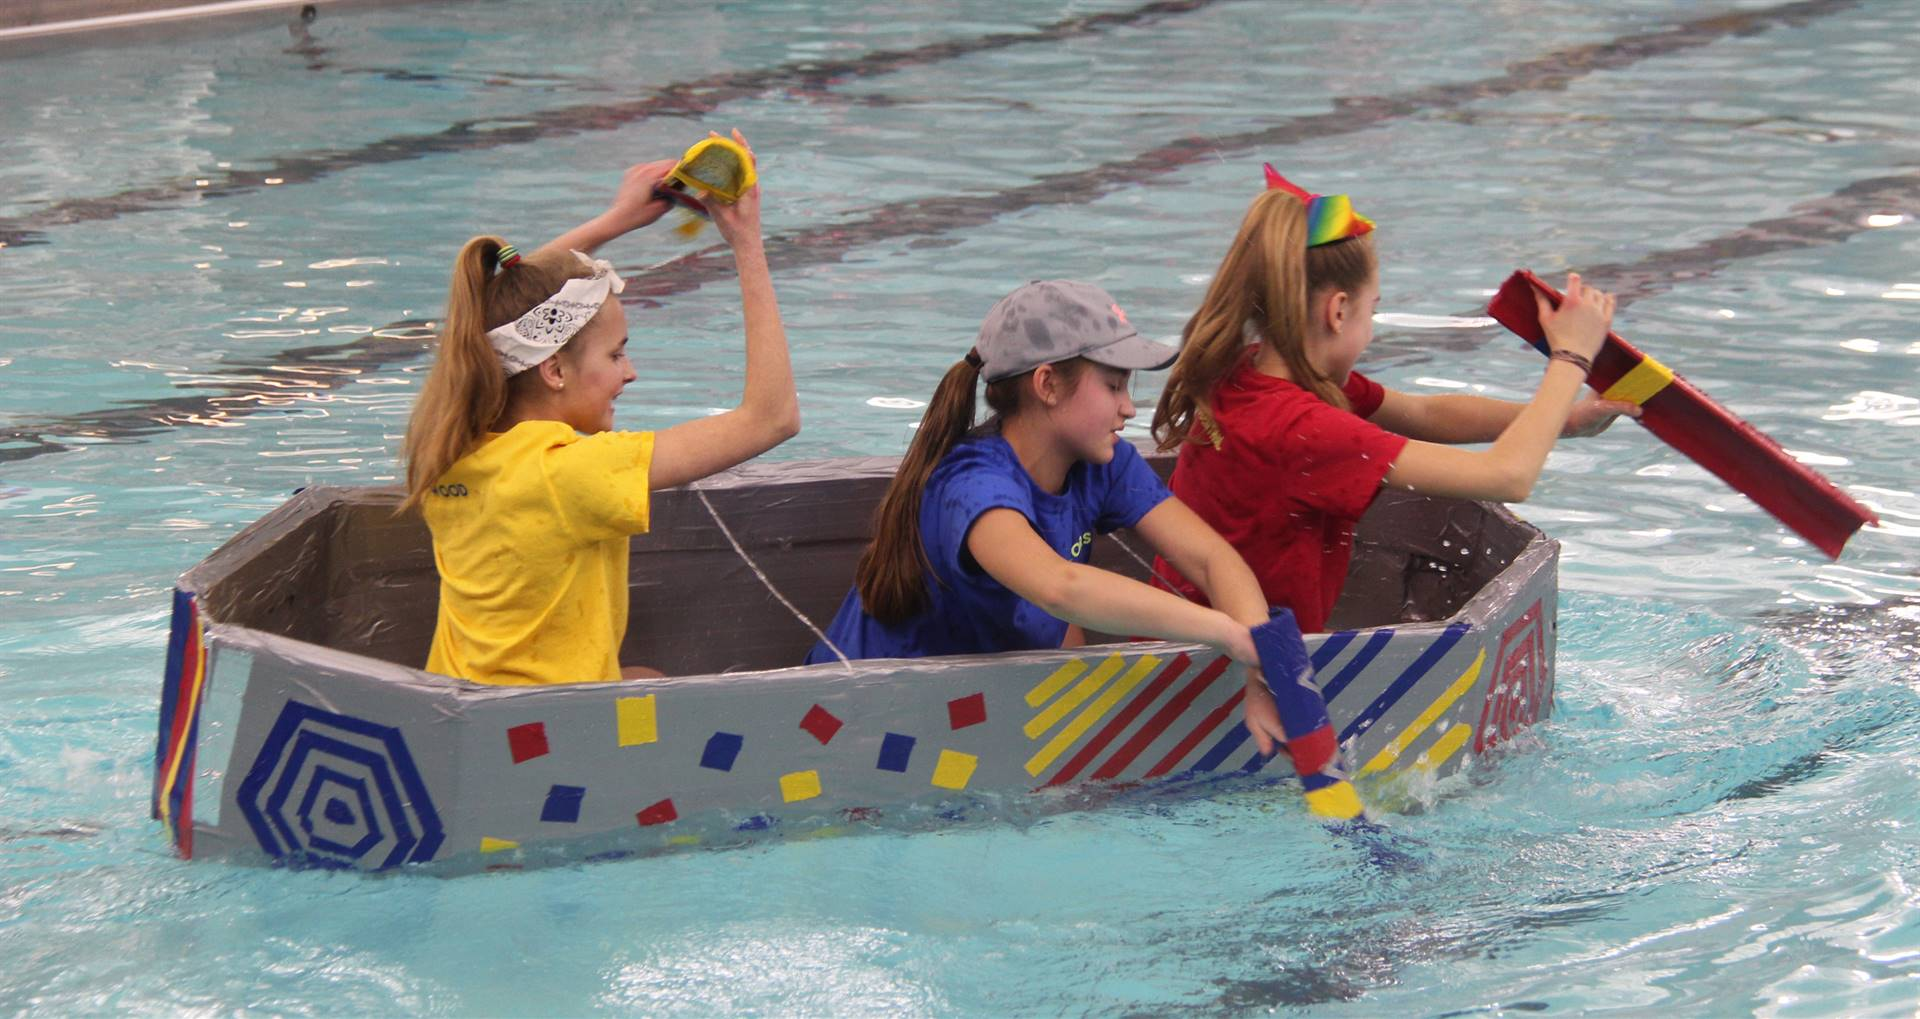 three students competing in cardboard boat race